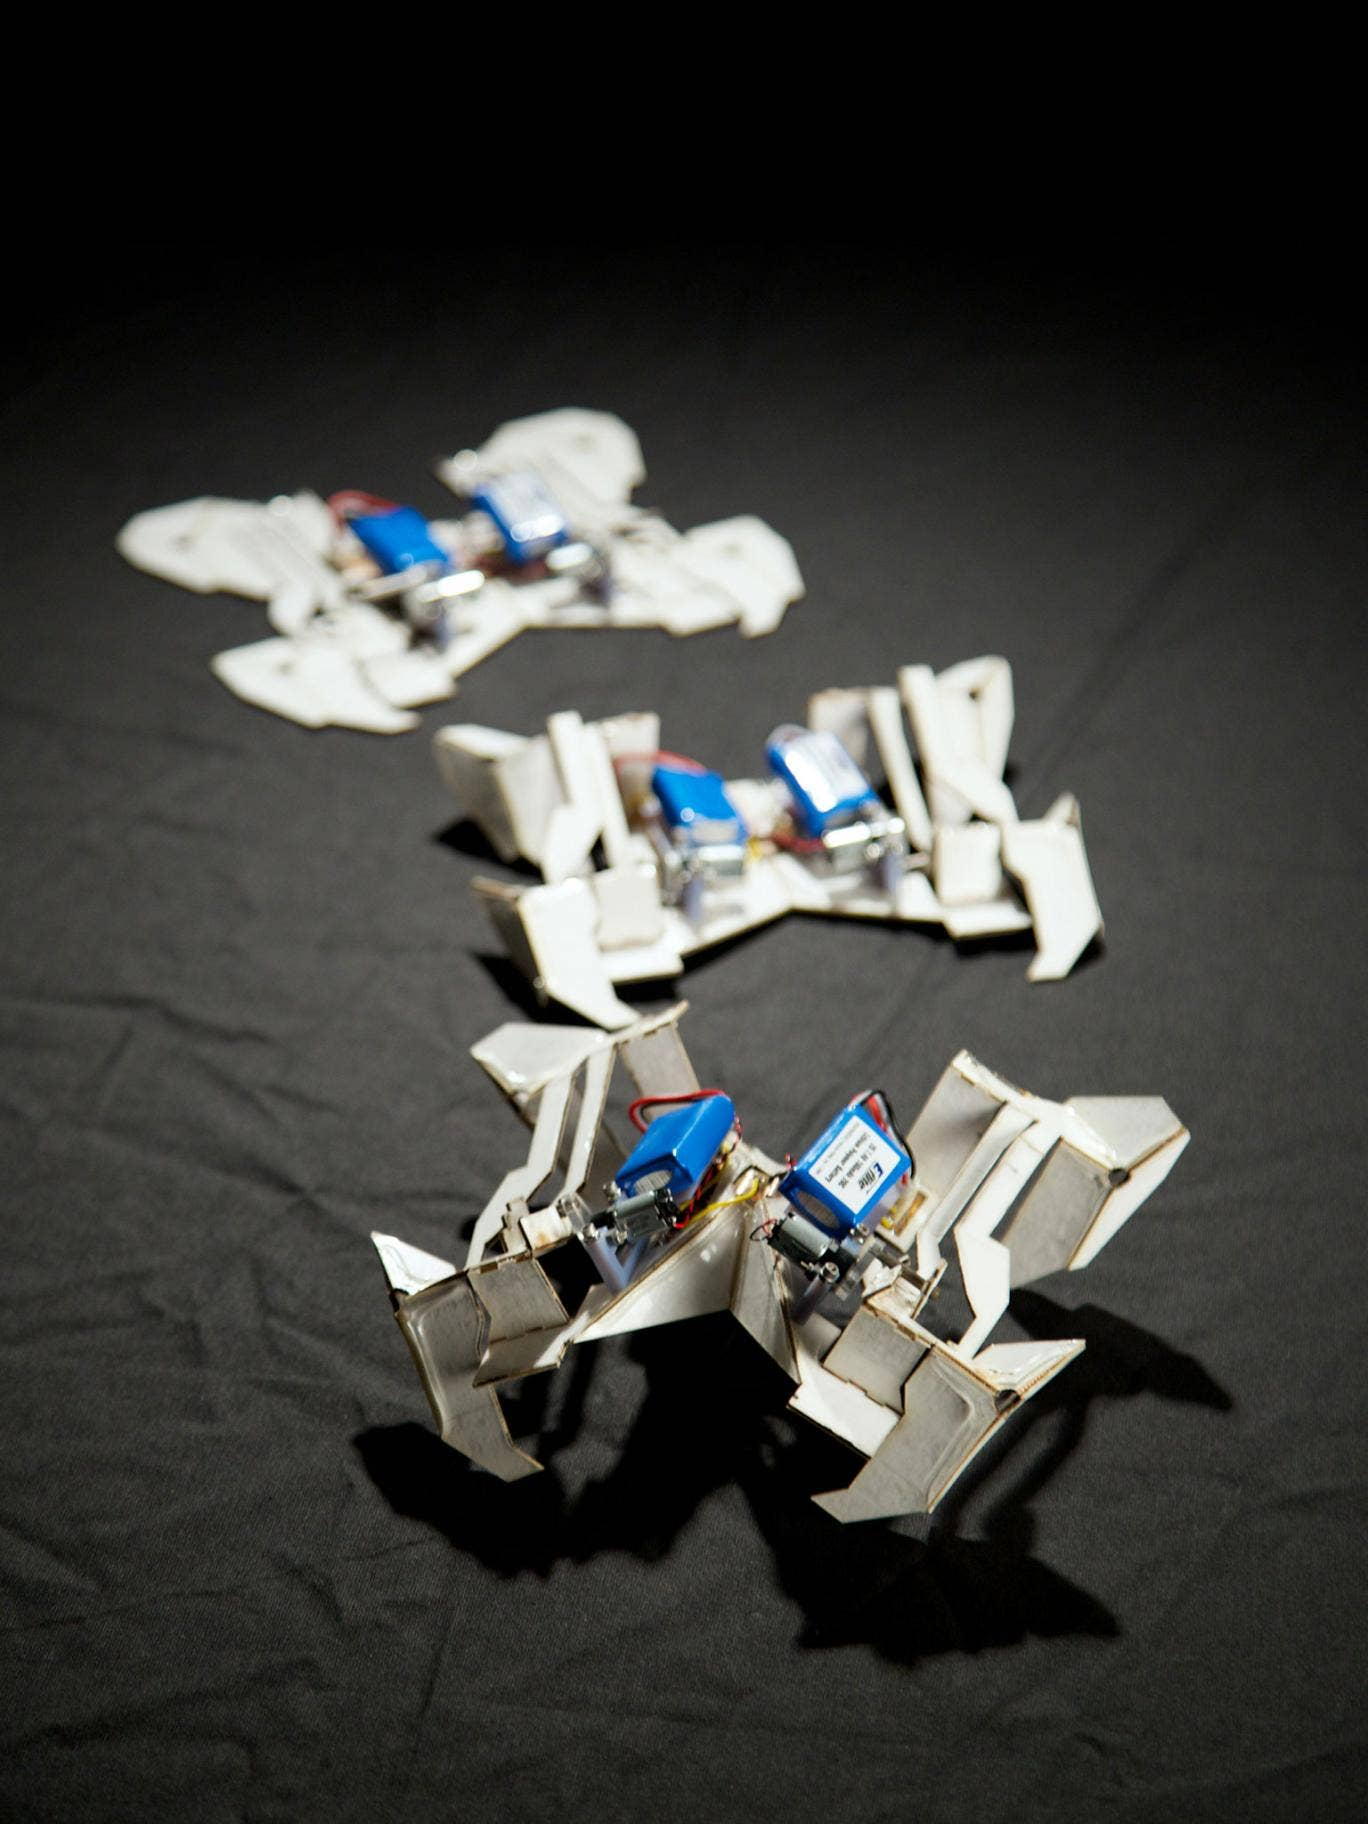 space exploration robots - photo #32